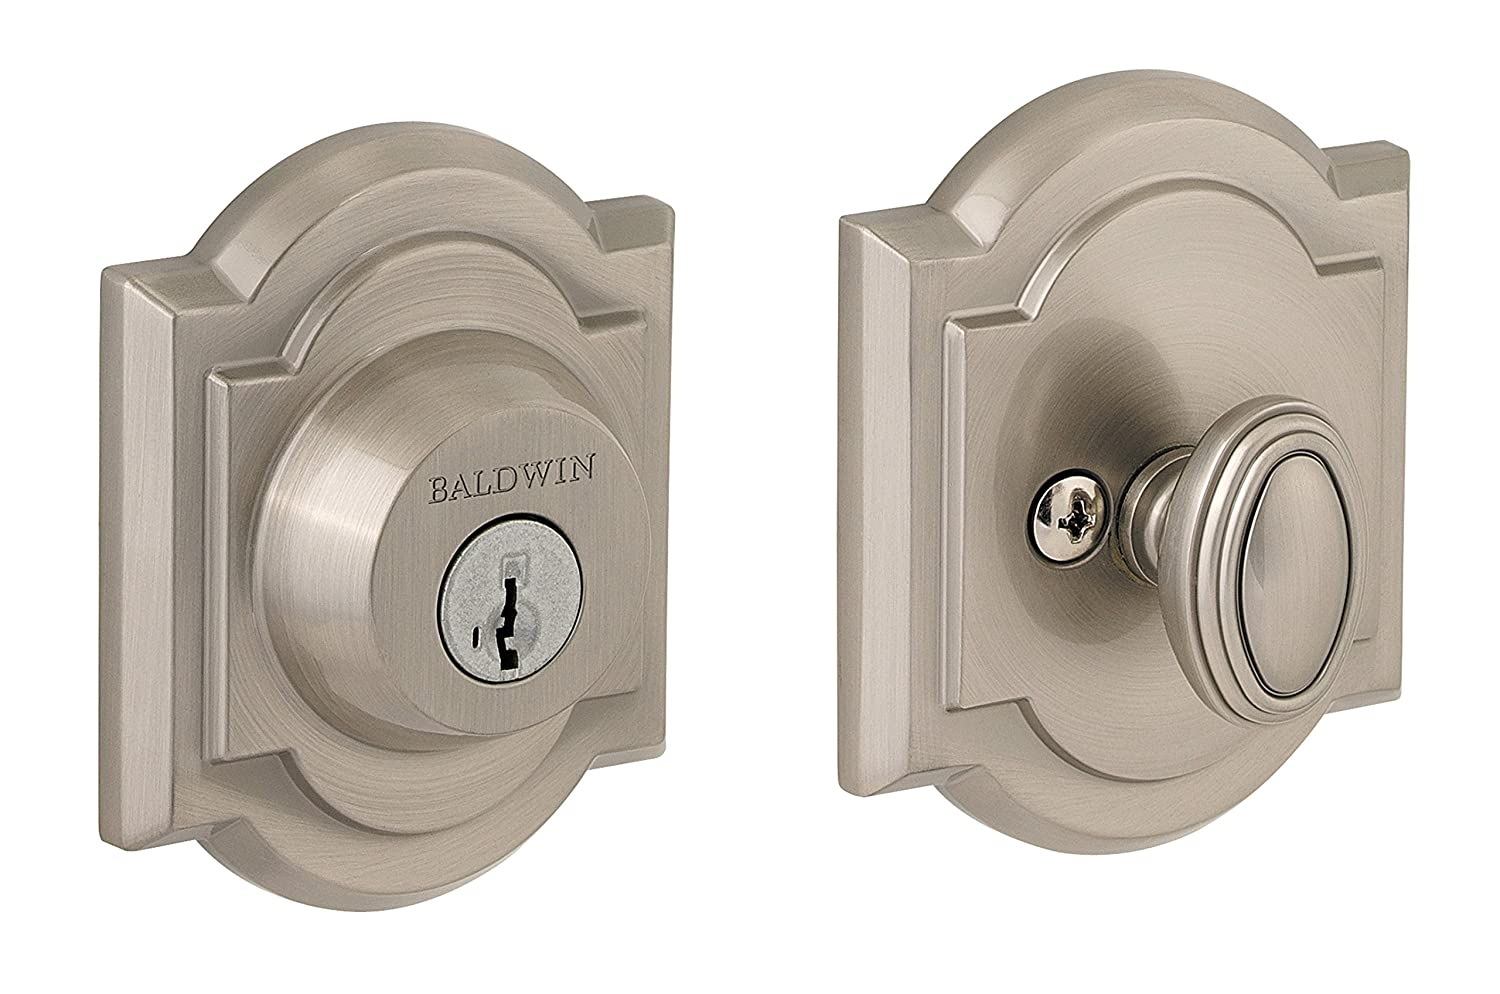 Baldwin Prestige 380 Arched Single Cylinder Deadbolt Featuring SmartKey in Satin Nickel